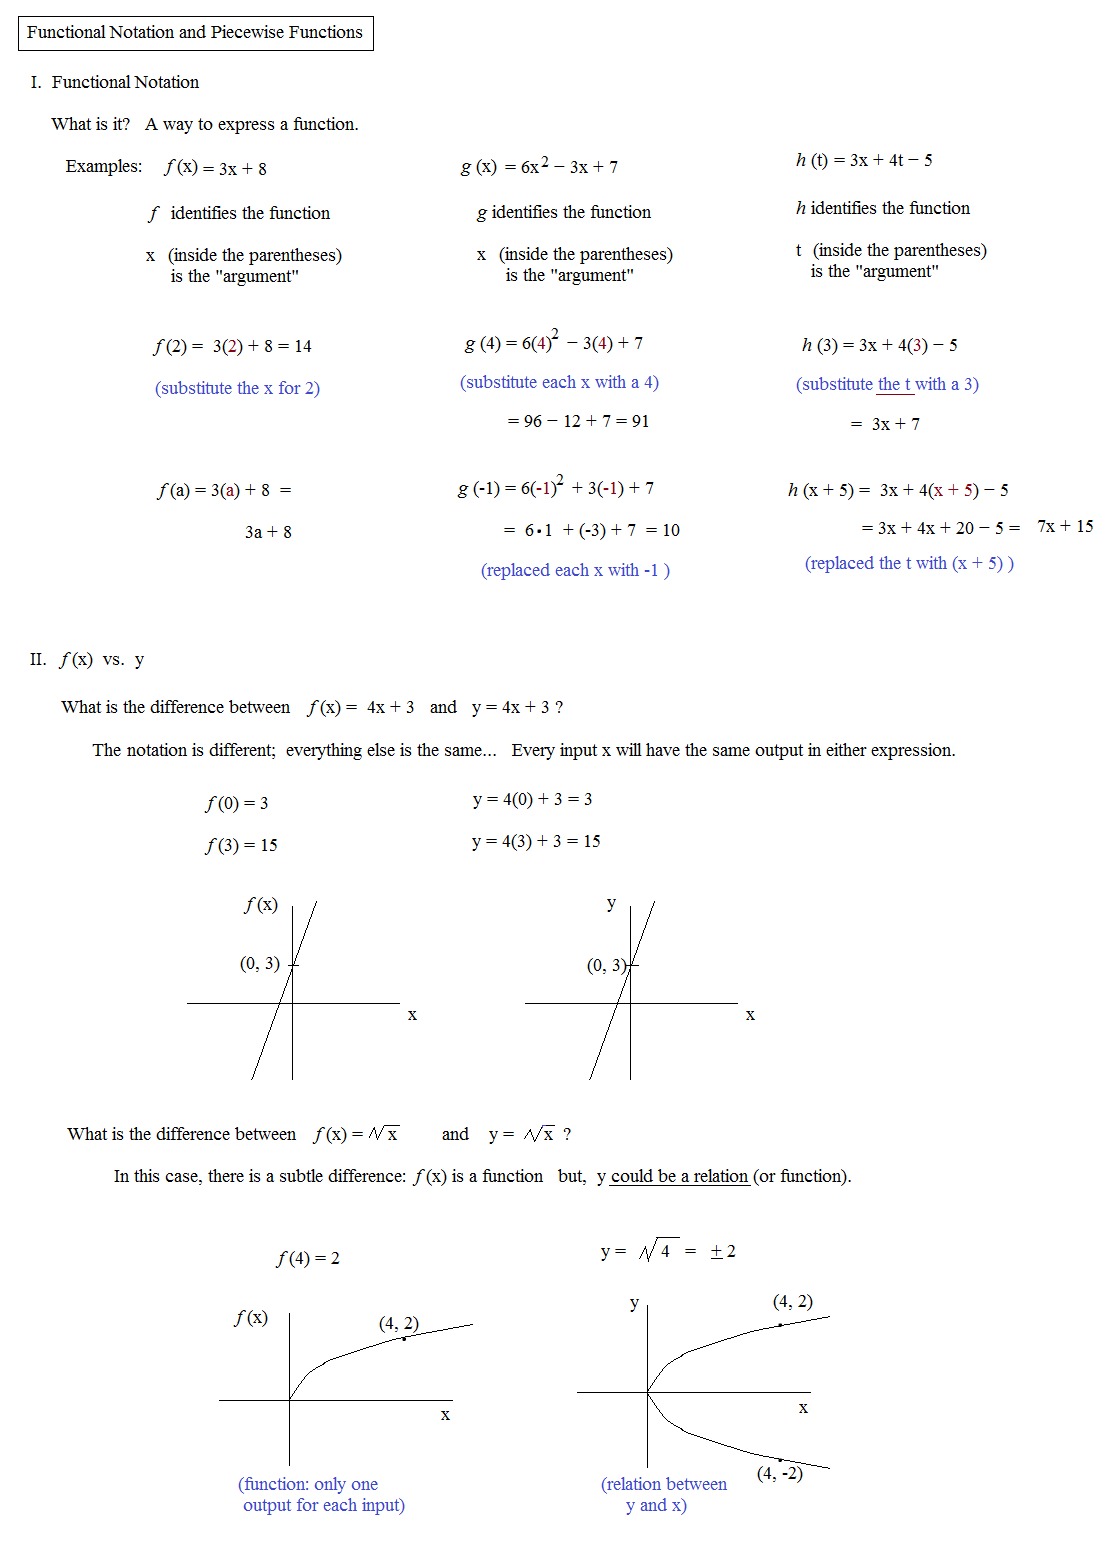 Worksheet Piecewise Functions Answers Key   Kids Activities